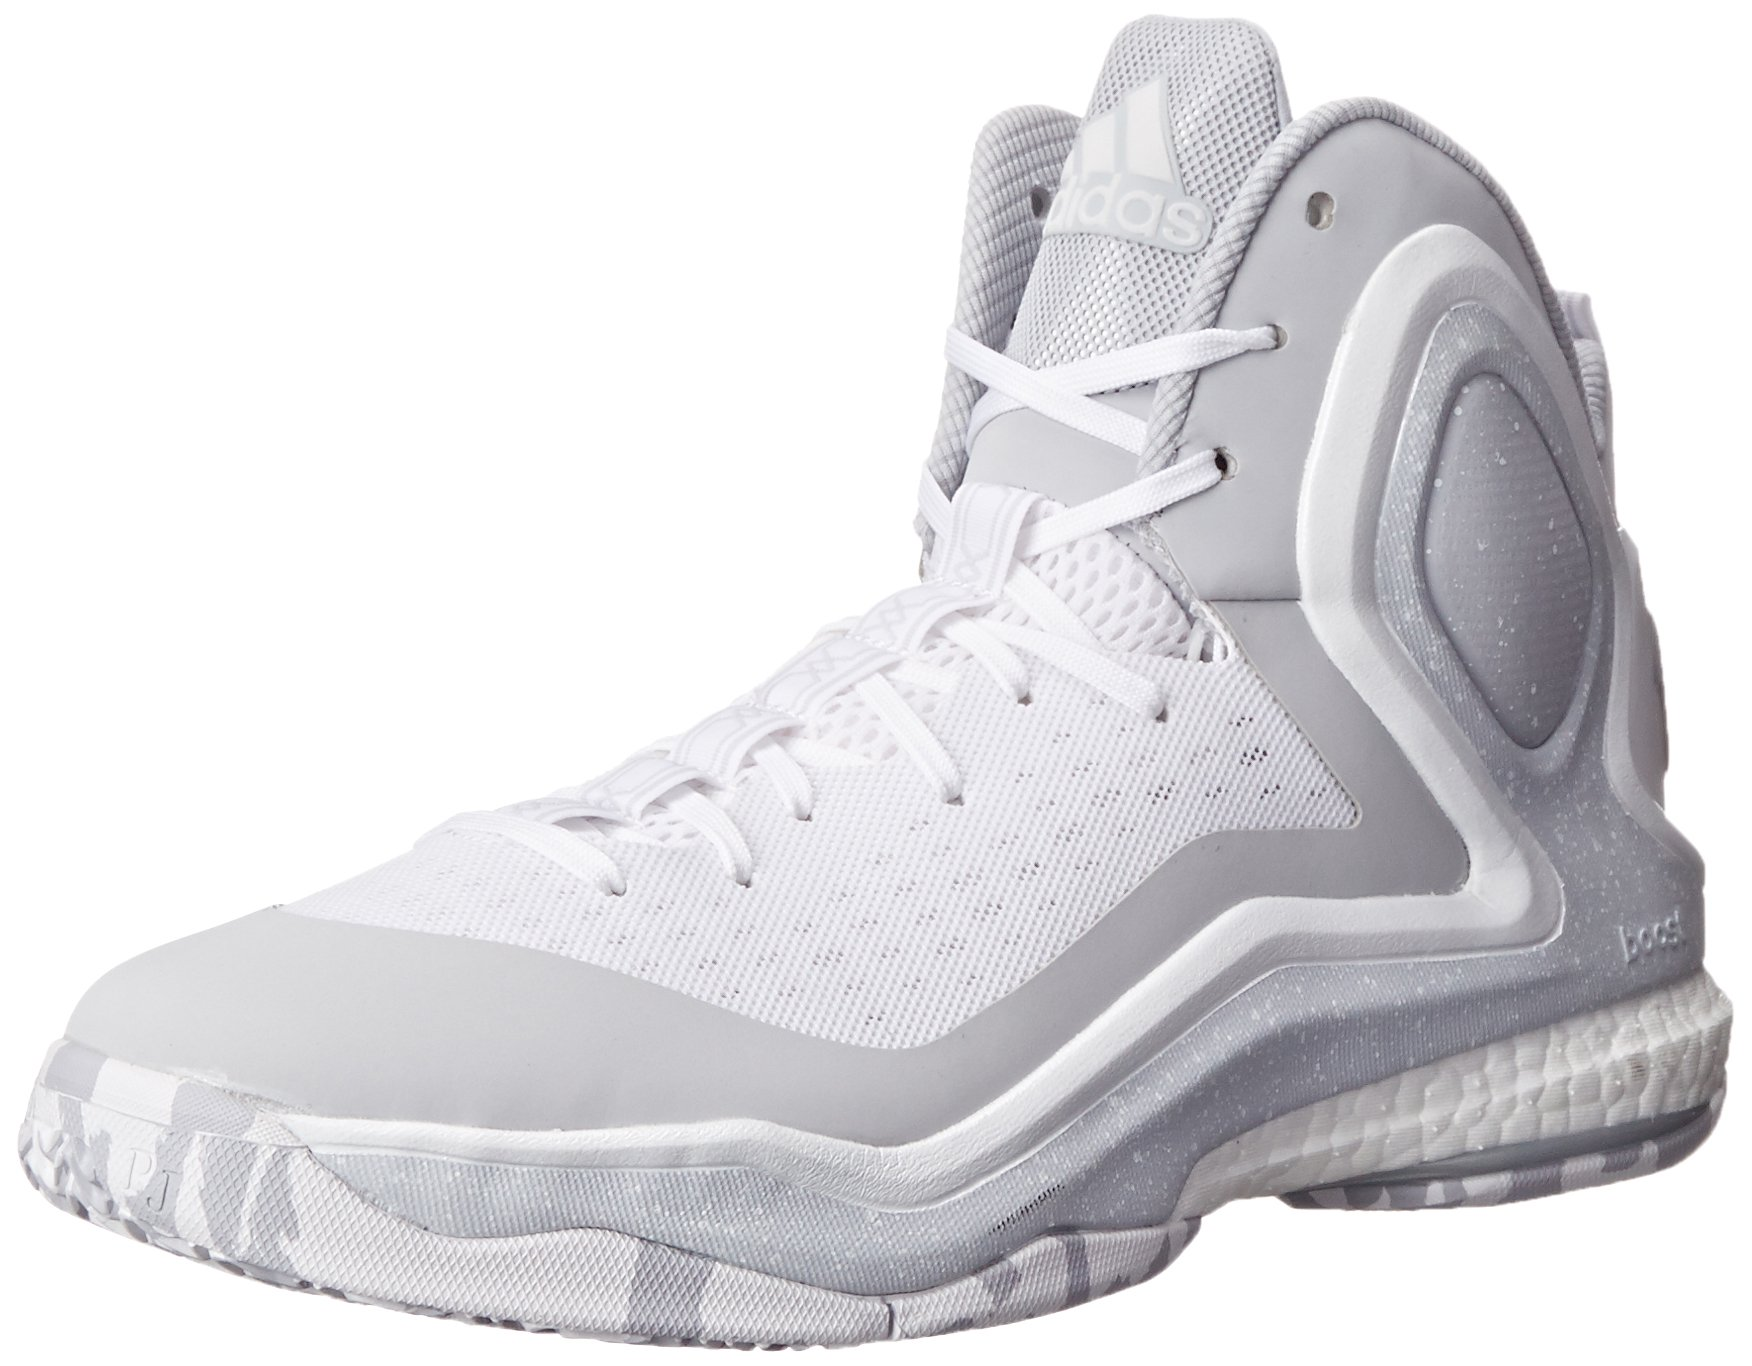 the best attitude dc1a2 70885 Galleon - Adidas Performance Men s D Rose 5 Boost Basketball Shoe,  White Grey White, 18 M US